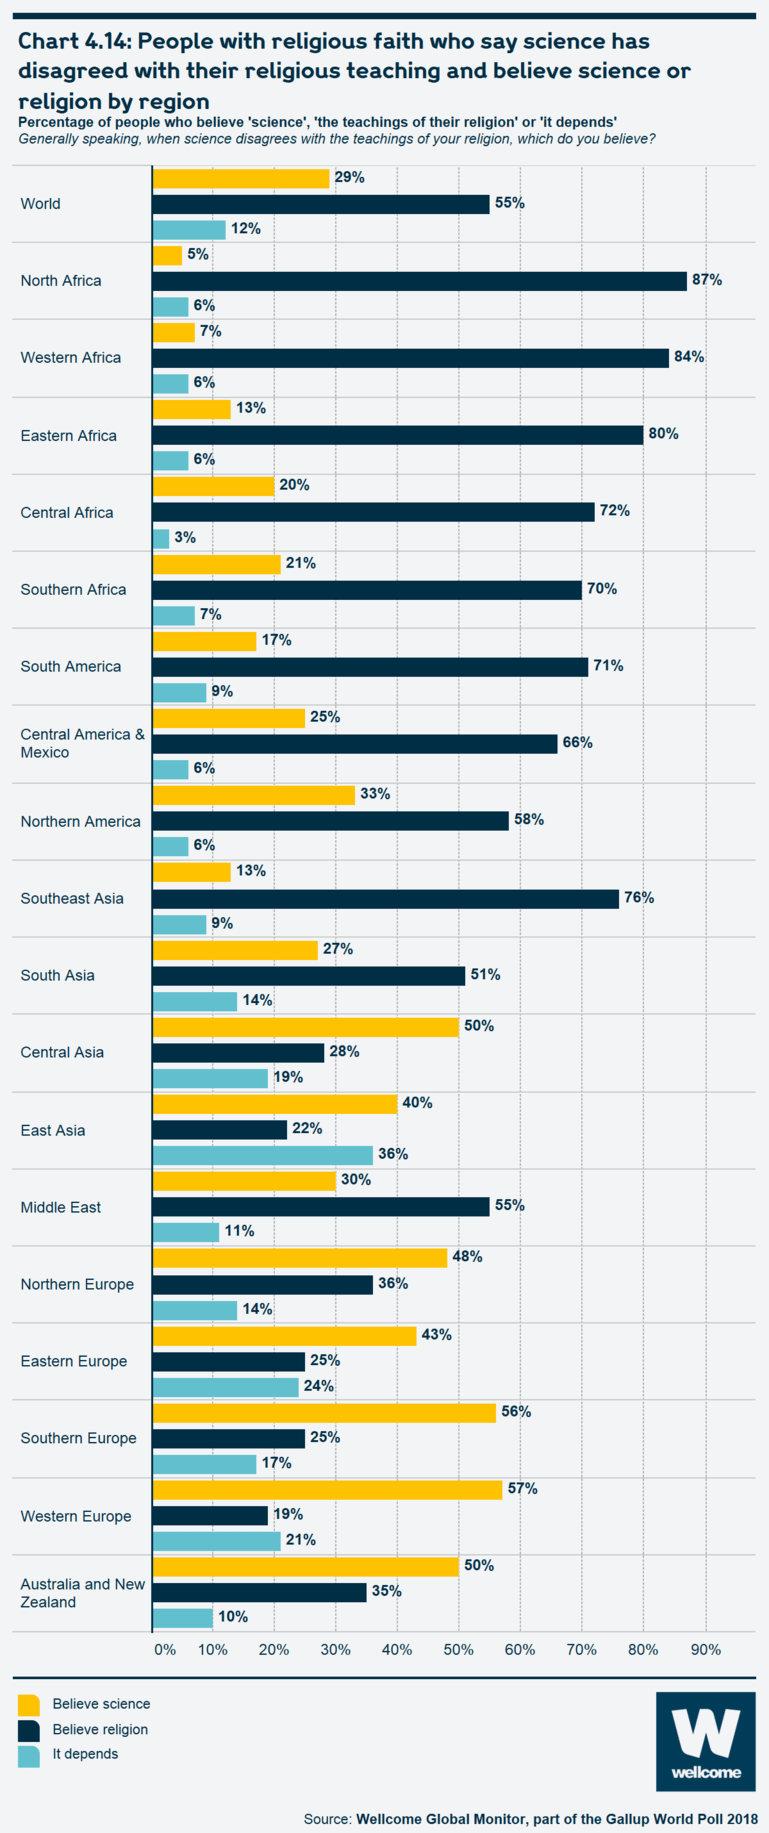 Chart 4.14 People with religious faith who say science has disagreed with their religious teaching and believe science or religion by region